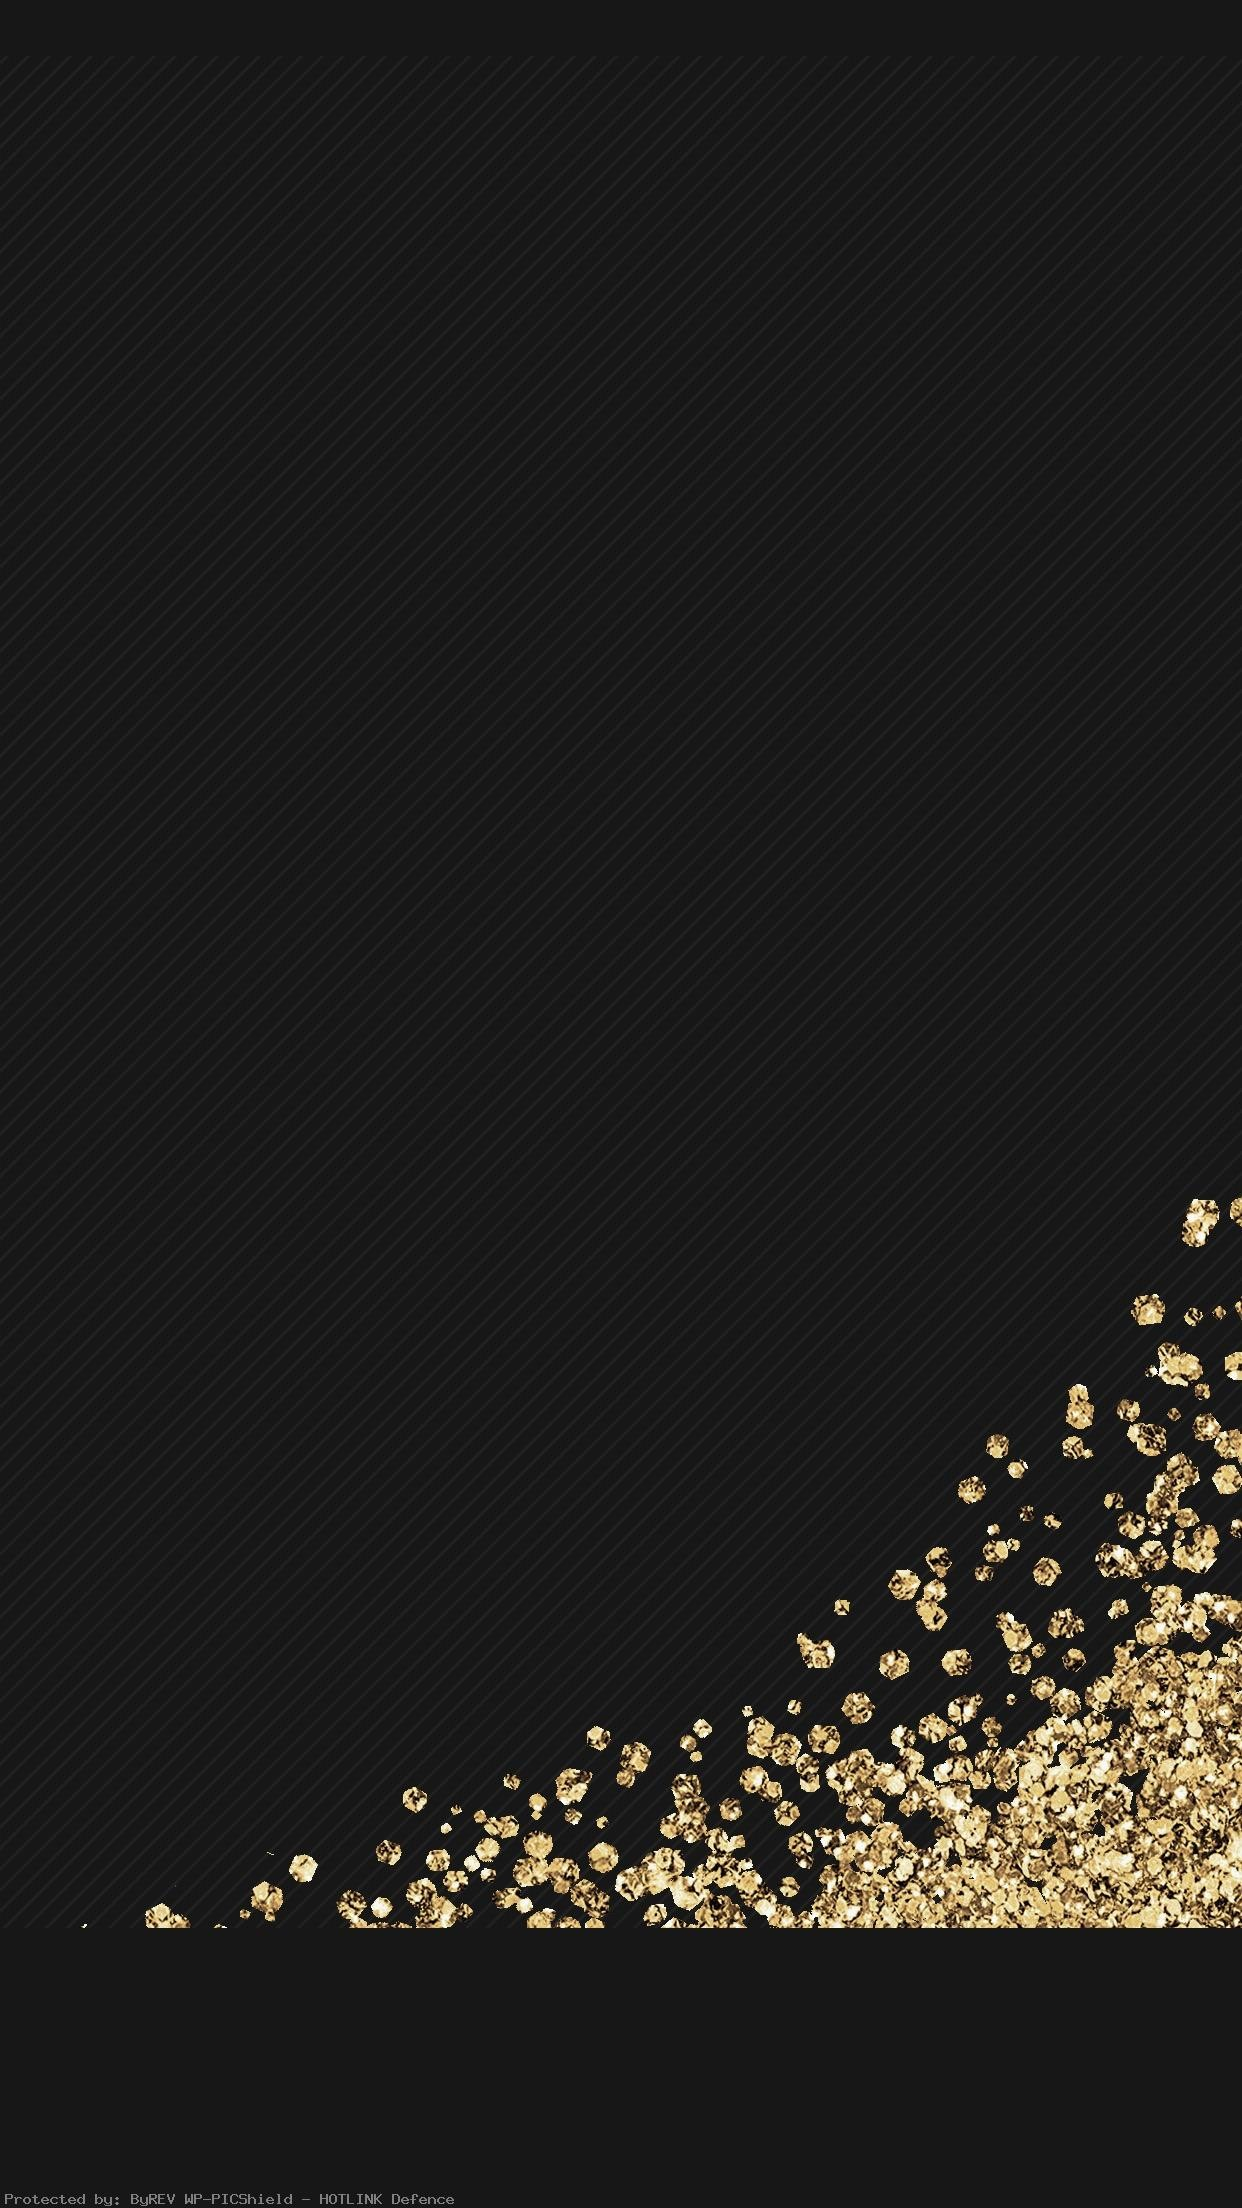 black-gold-glitter-background-iphone-android-HD-wallpaper-